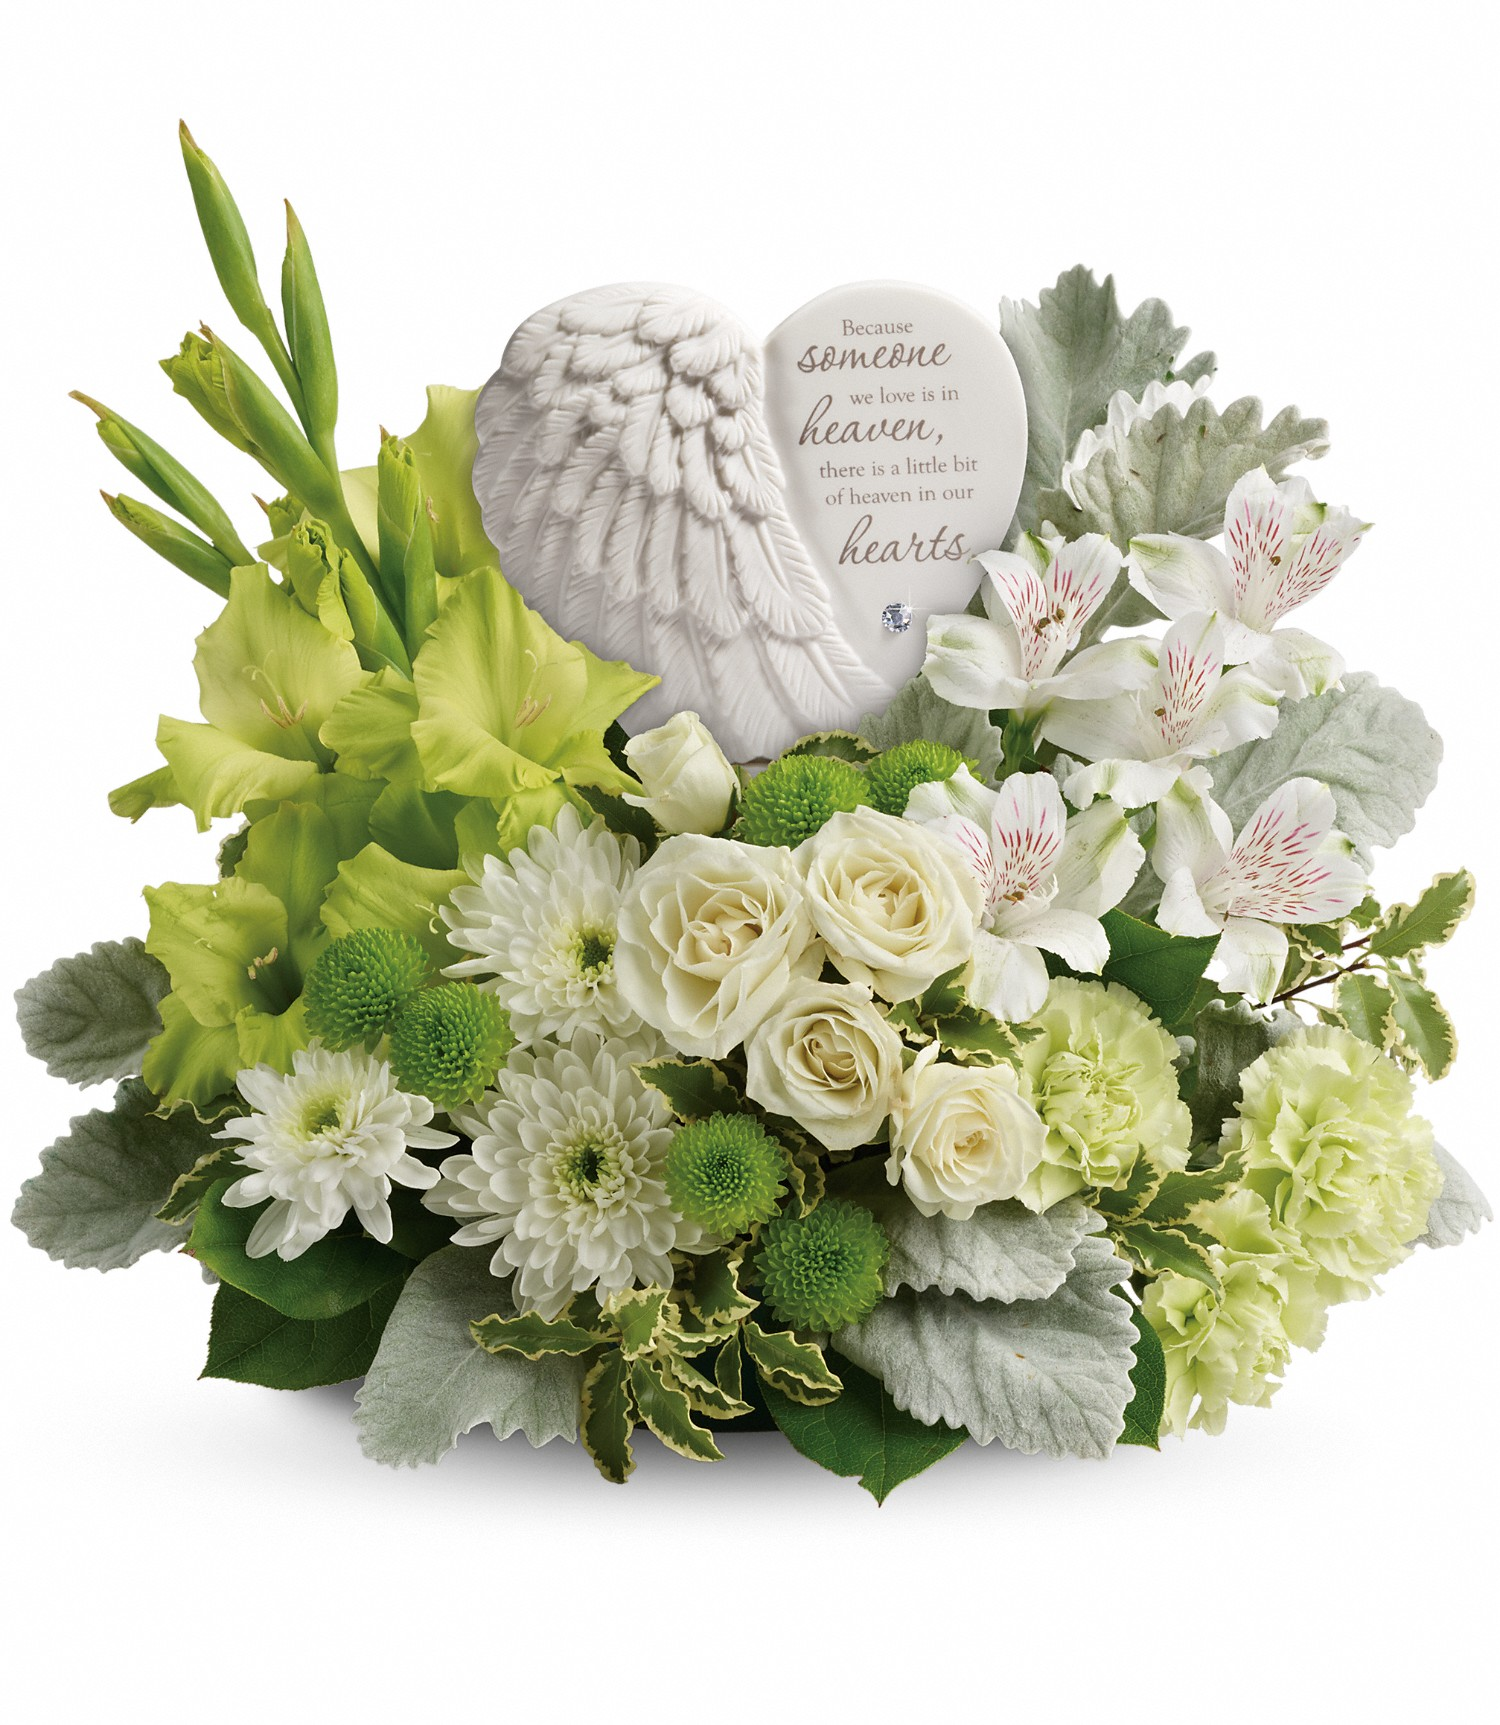 Keirsteads flowers and gifts a family tradition since 1925 message on sculpt reads because someone we love is in heaven there is a little bit of heaven in our hearts izmirmasajfo